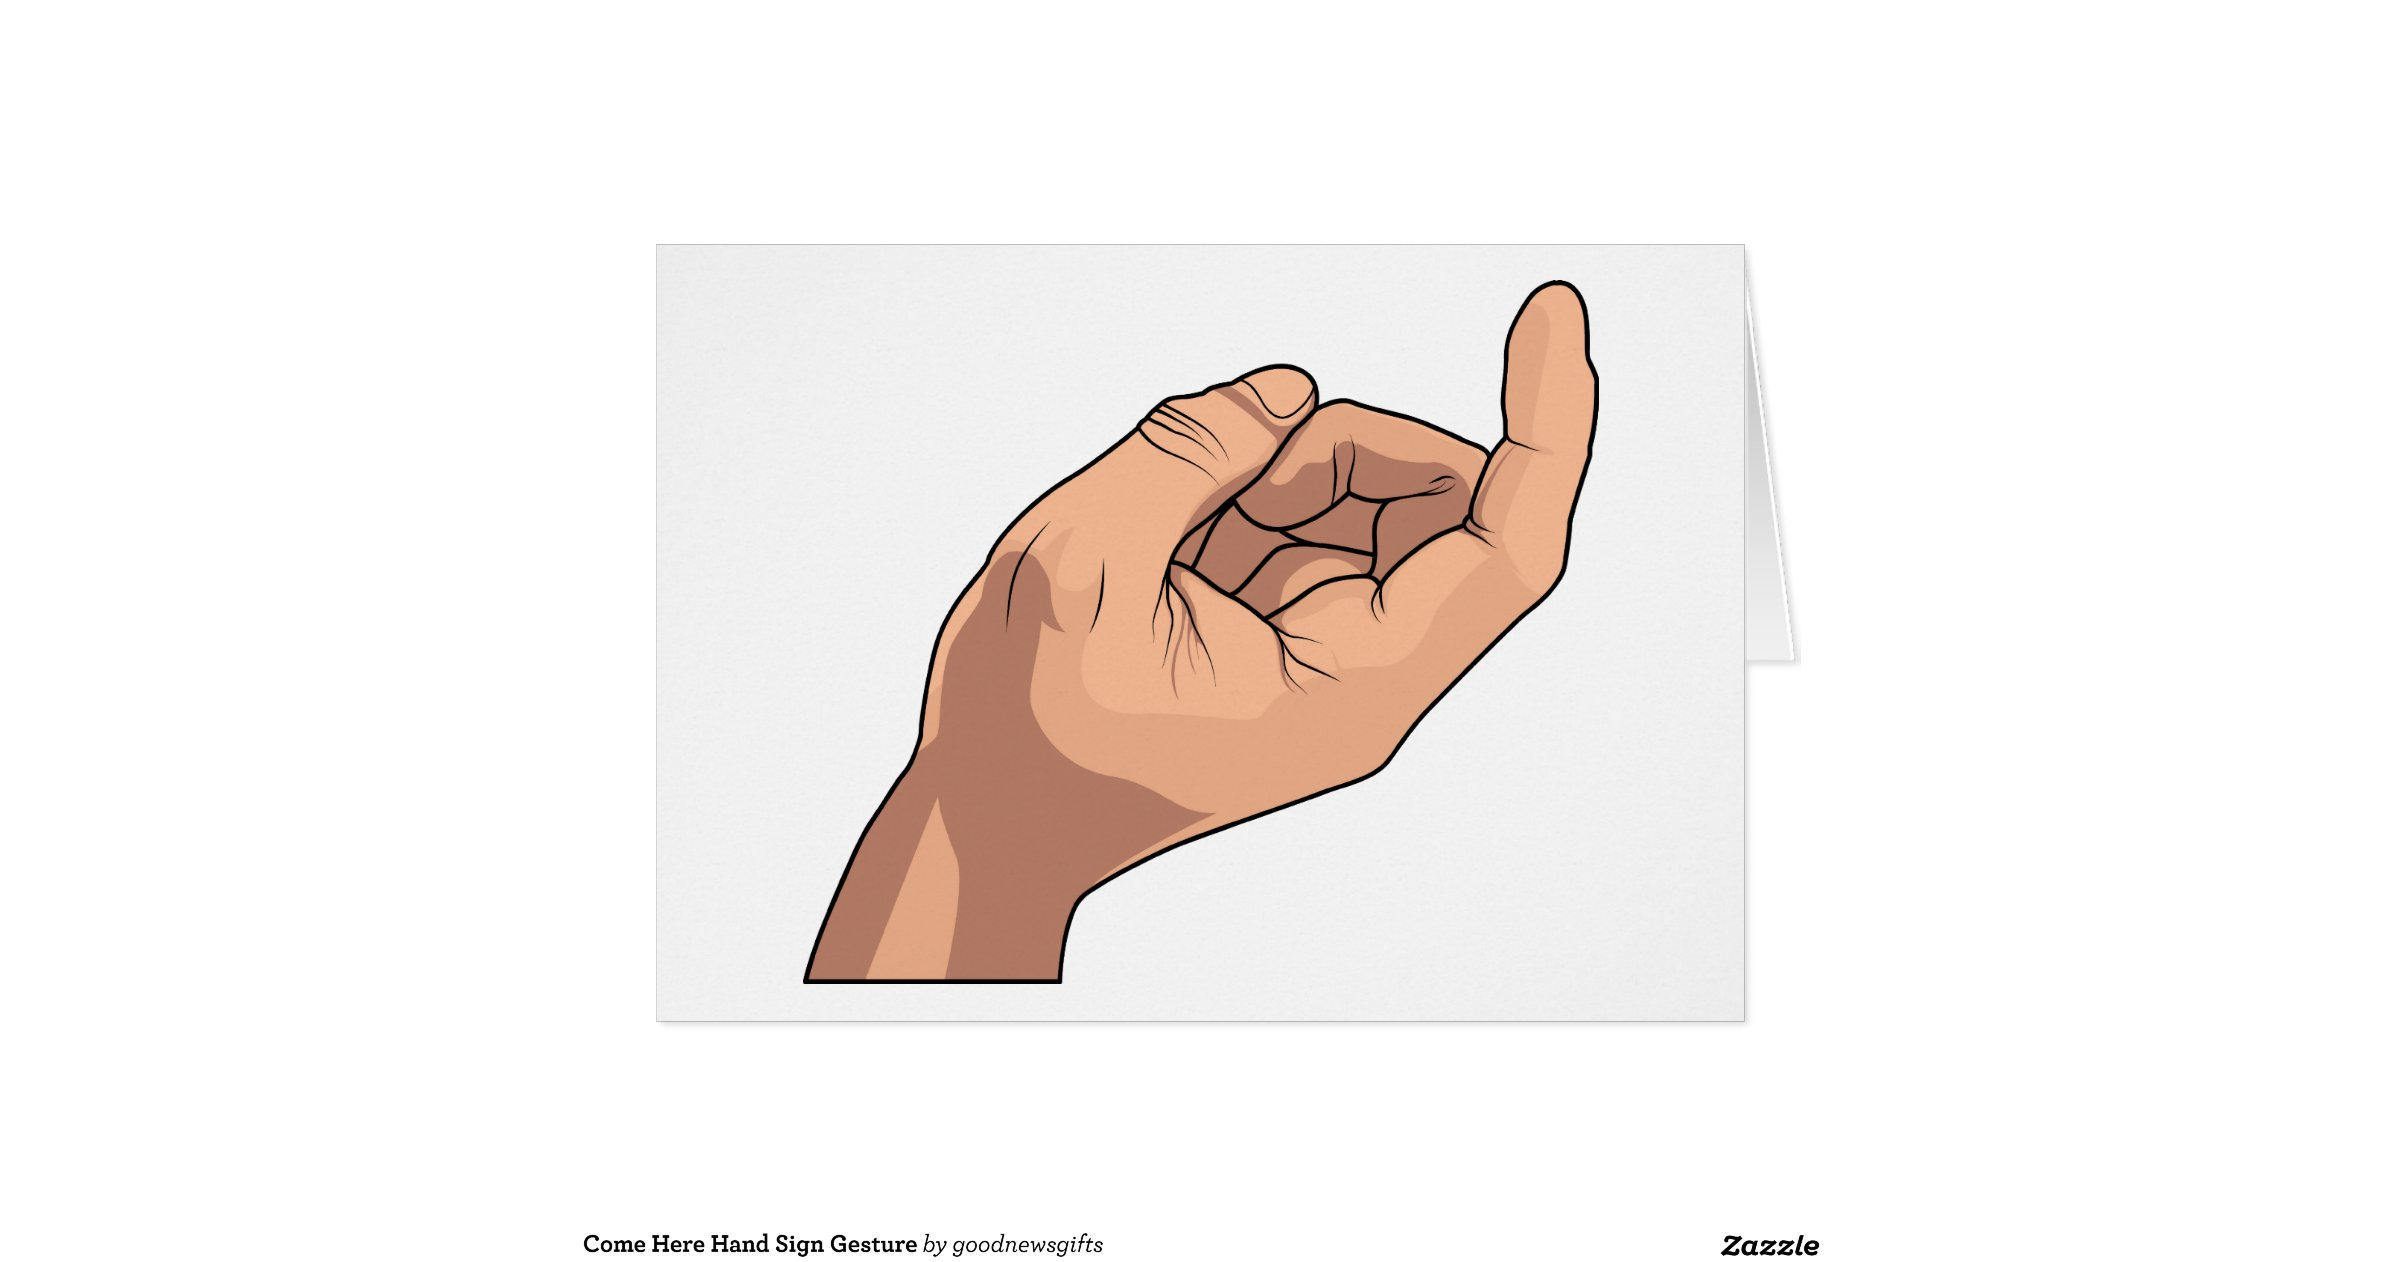 Come Here Hand Sign Gesture   Zazzle